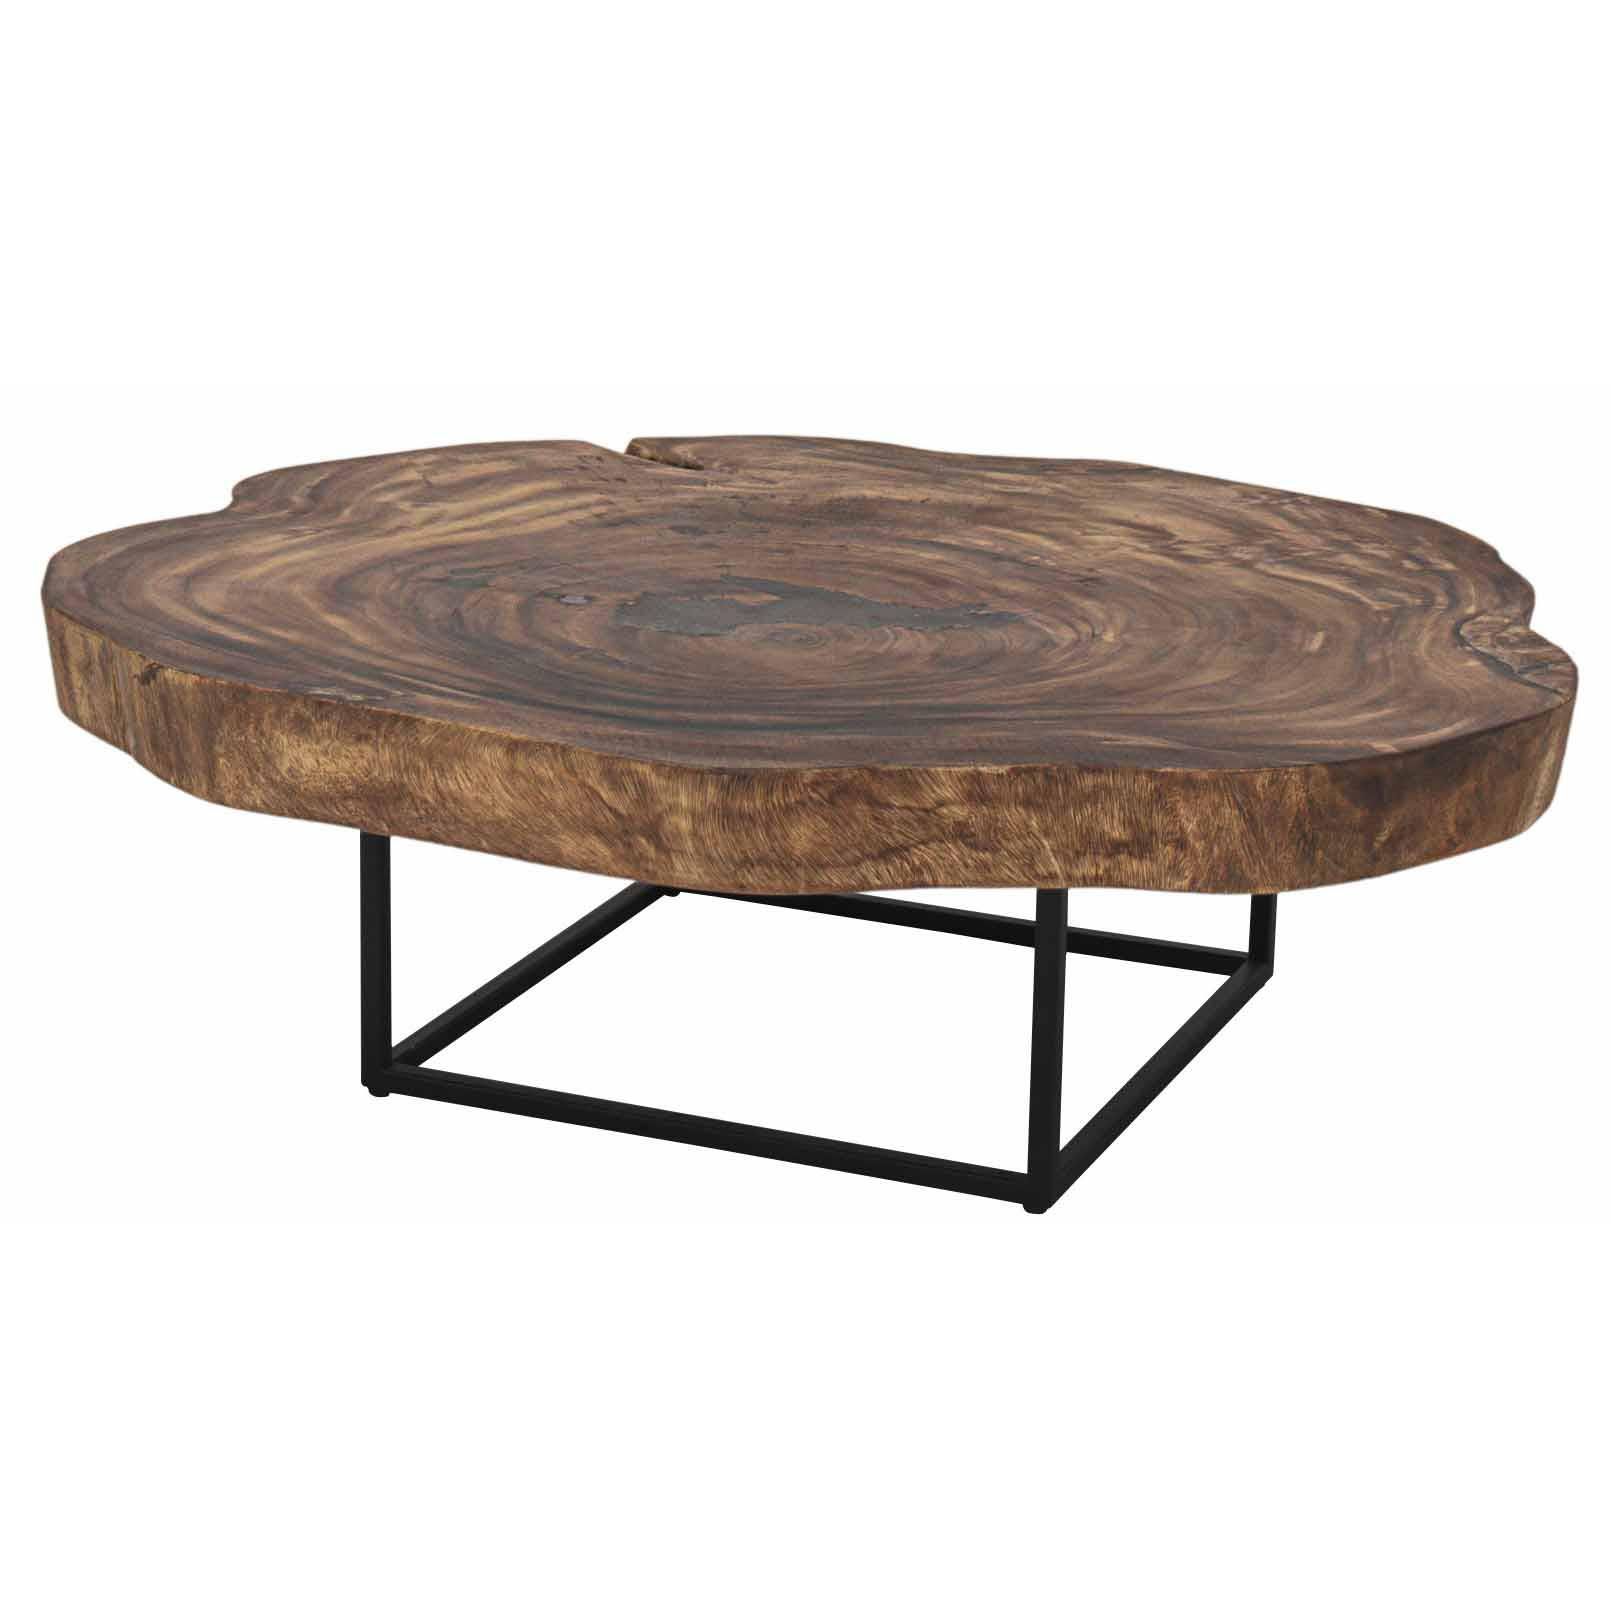 Trembesi Coffee Table Black Iron Legs Natural Boulevard Urban Living throughout dimensions 1611 X 1611